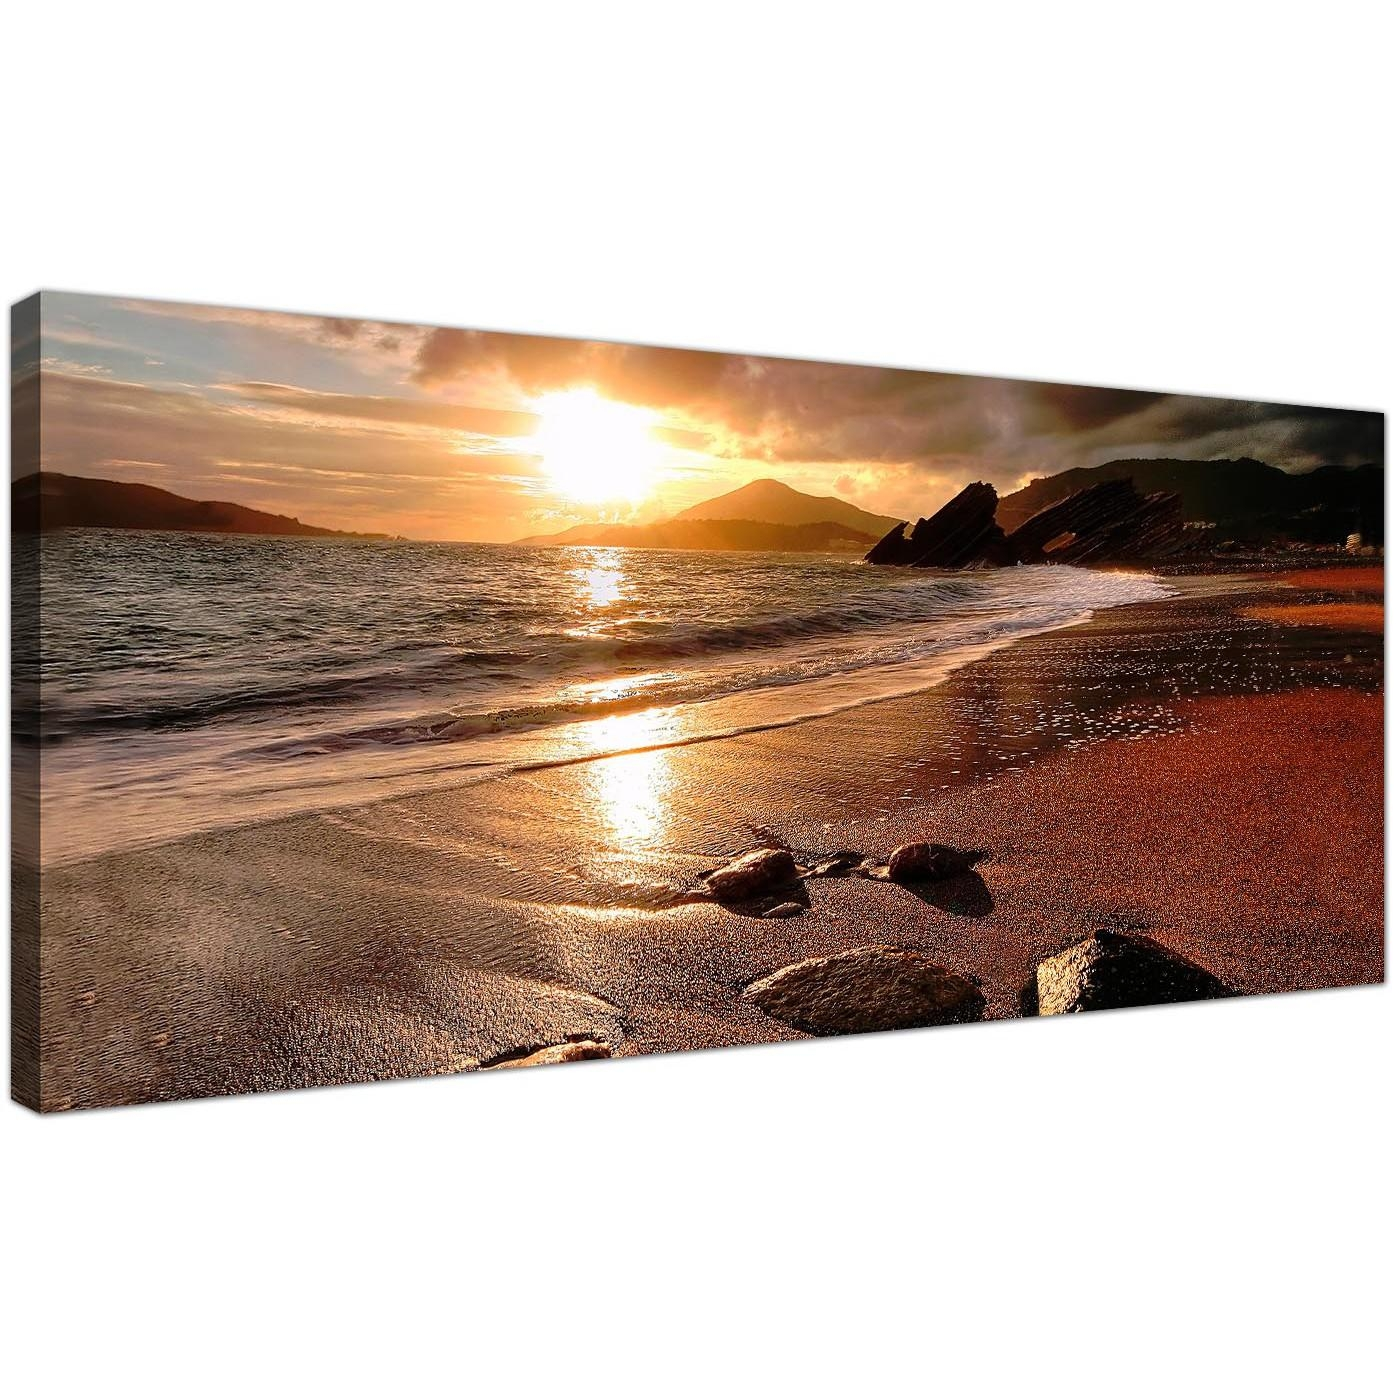 Wide Canvas Prints Of A Beach Sunset For Your Living Room Regarding Nautical Canvas Wall Art (Image 20 of 20)